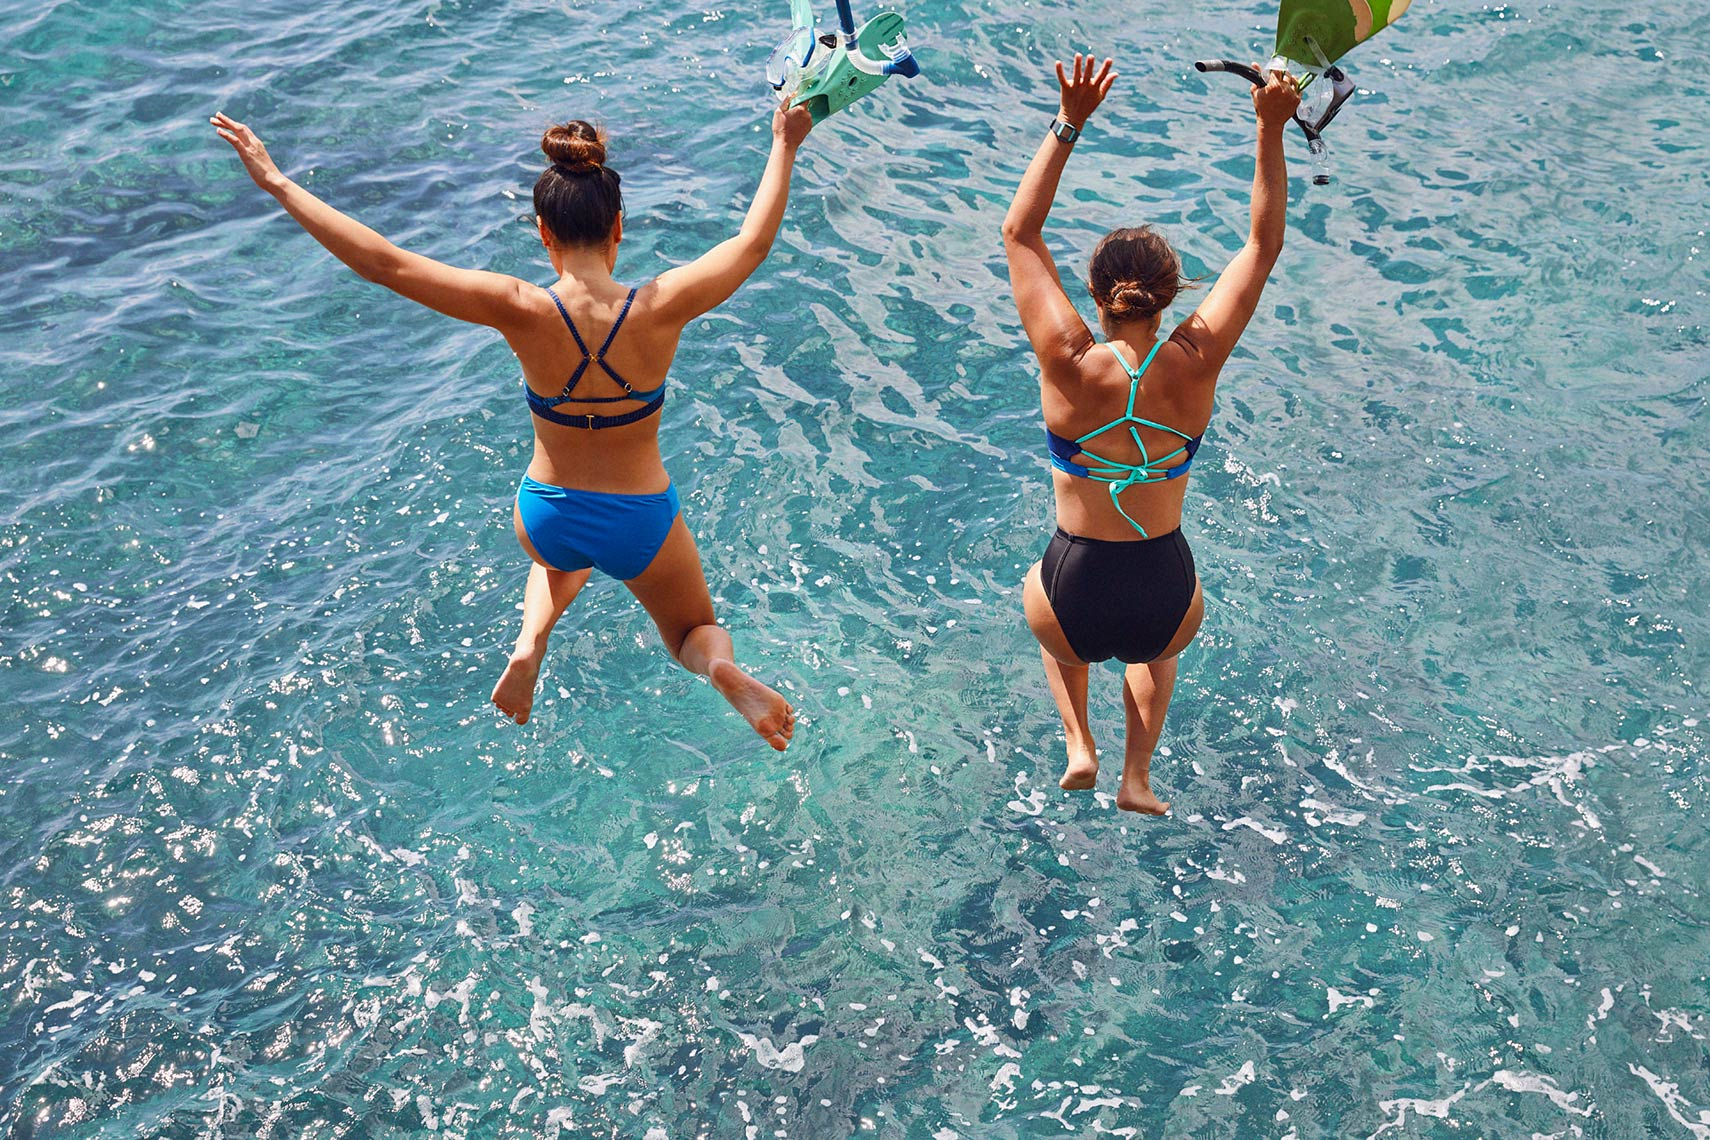 two women jumping into ocean in swimwear with hands overhead